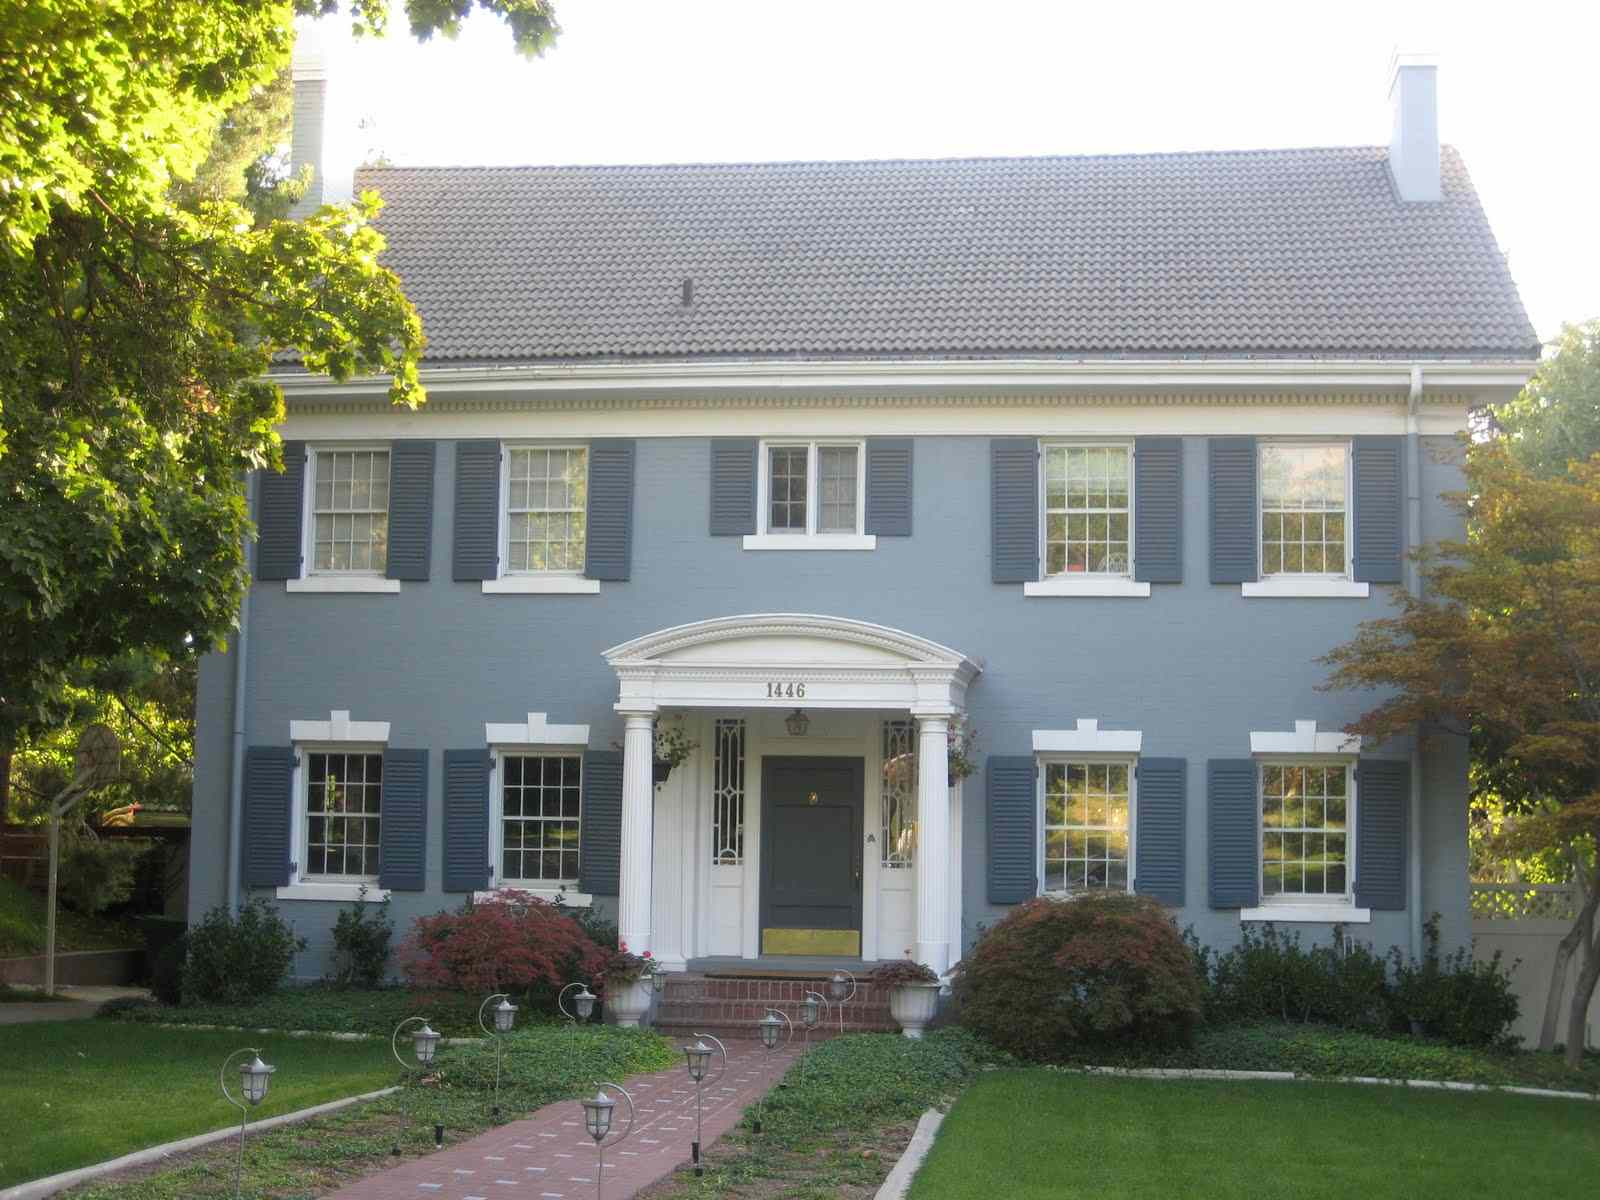 A Big Beautiful Home In A Light Blue Stucco